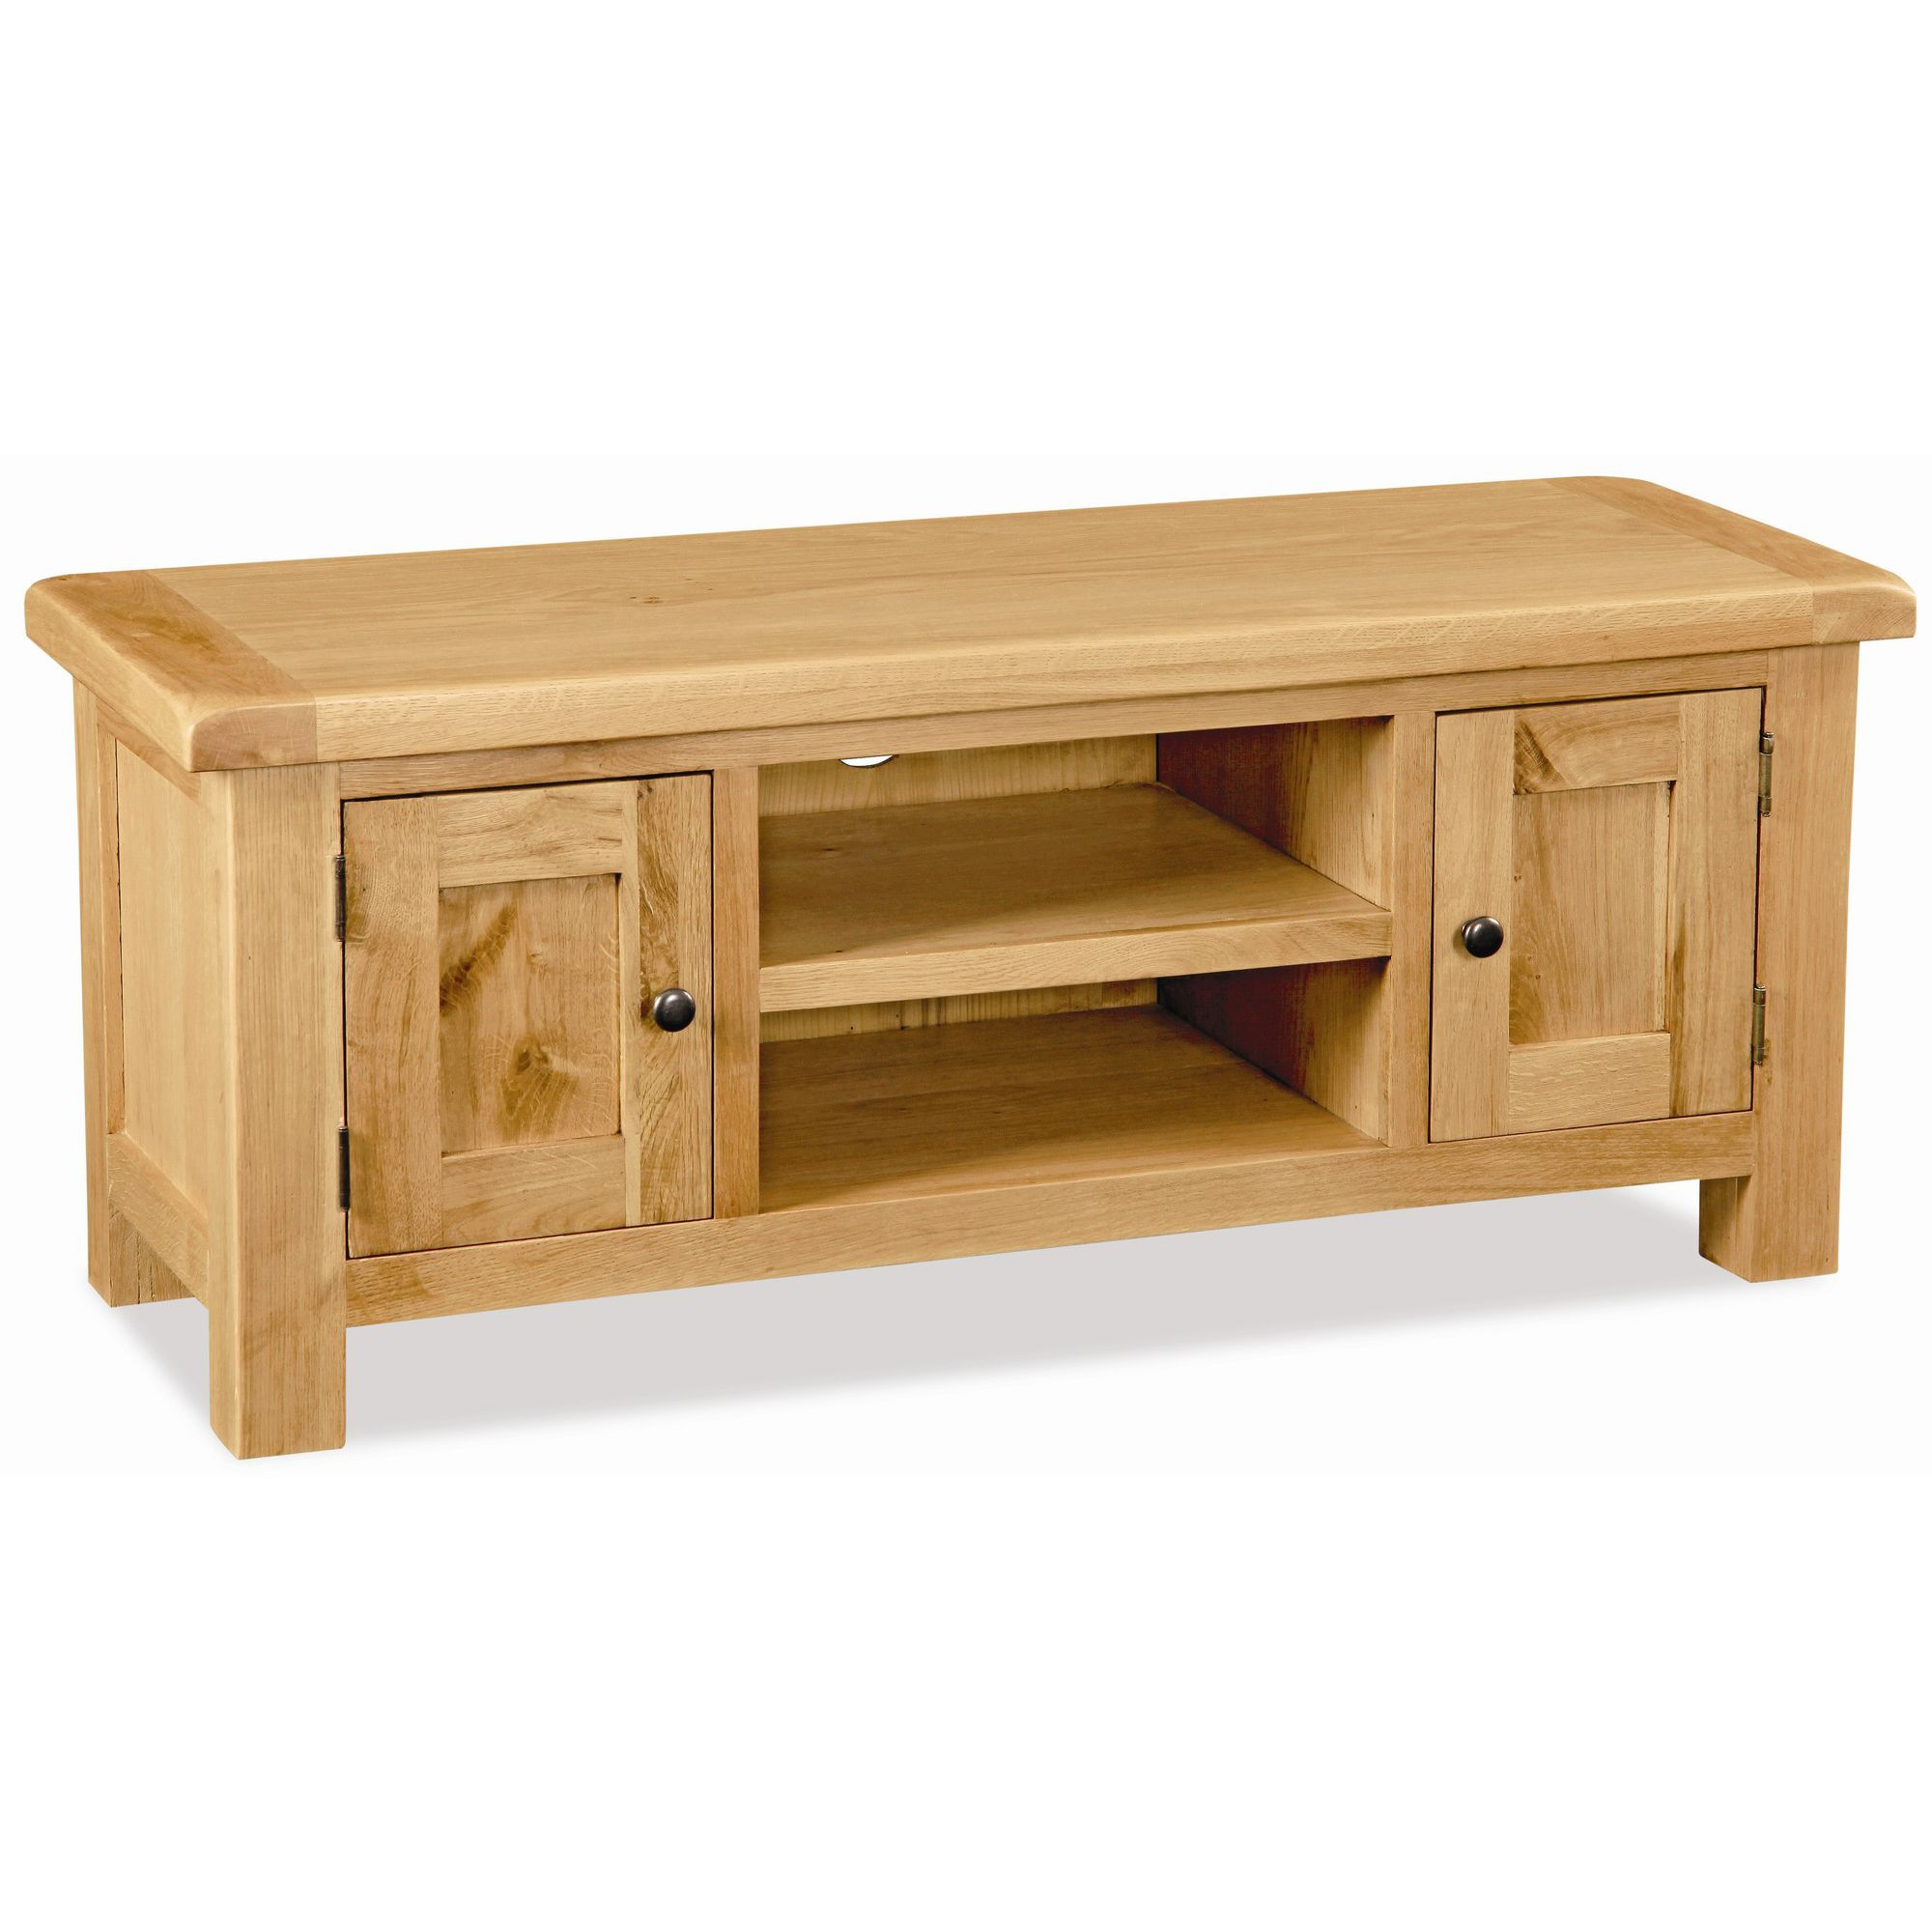 Alterton Furniture Pemberley TV Cabinet - Extra Large at Tesco Direct